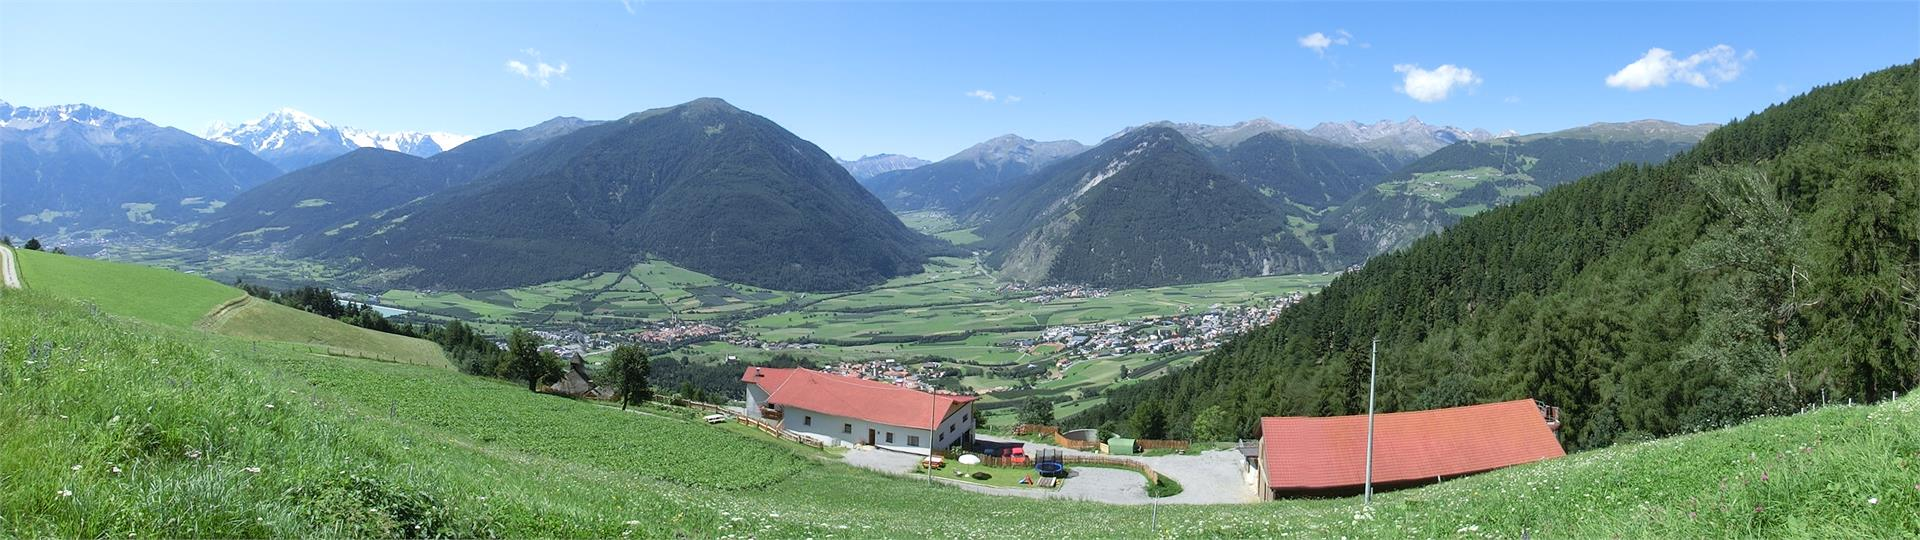 Unique pamoramic view from the Lechtlhof into the valley